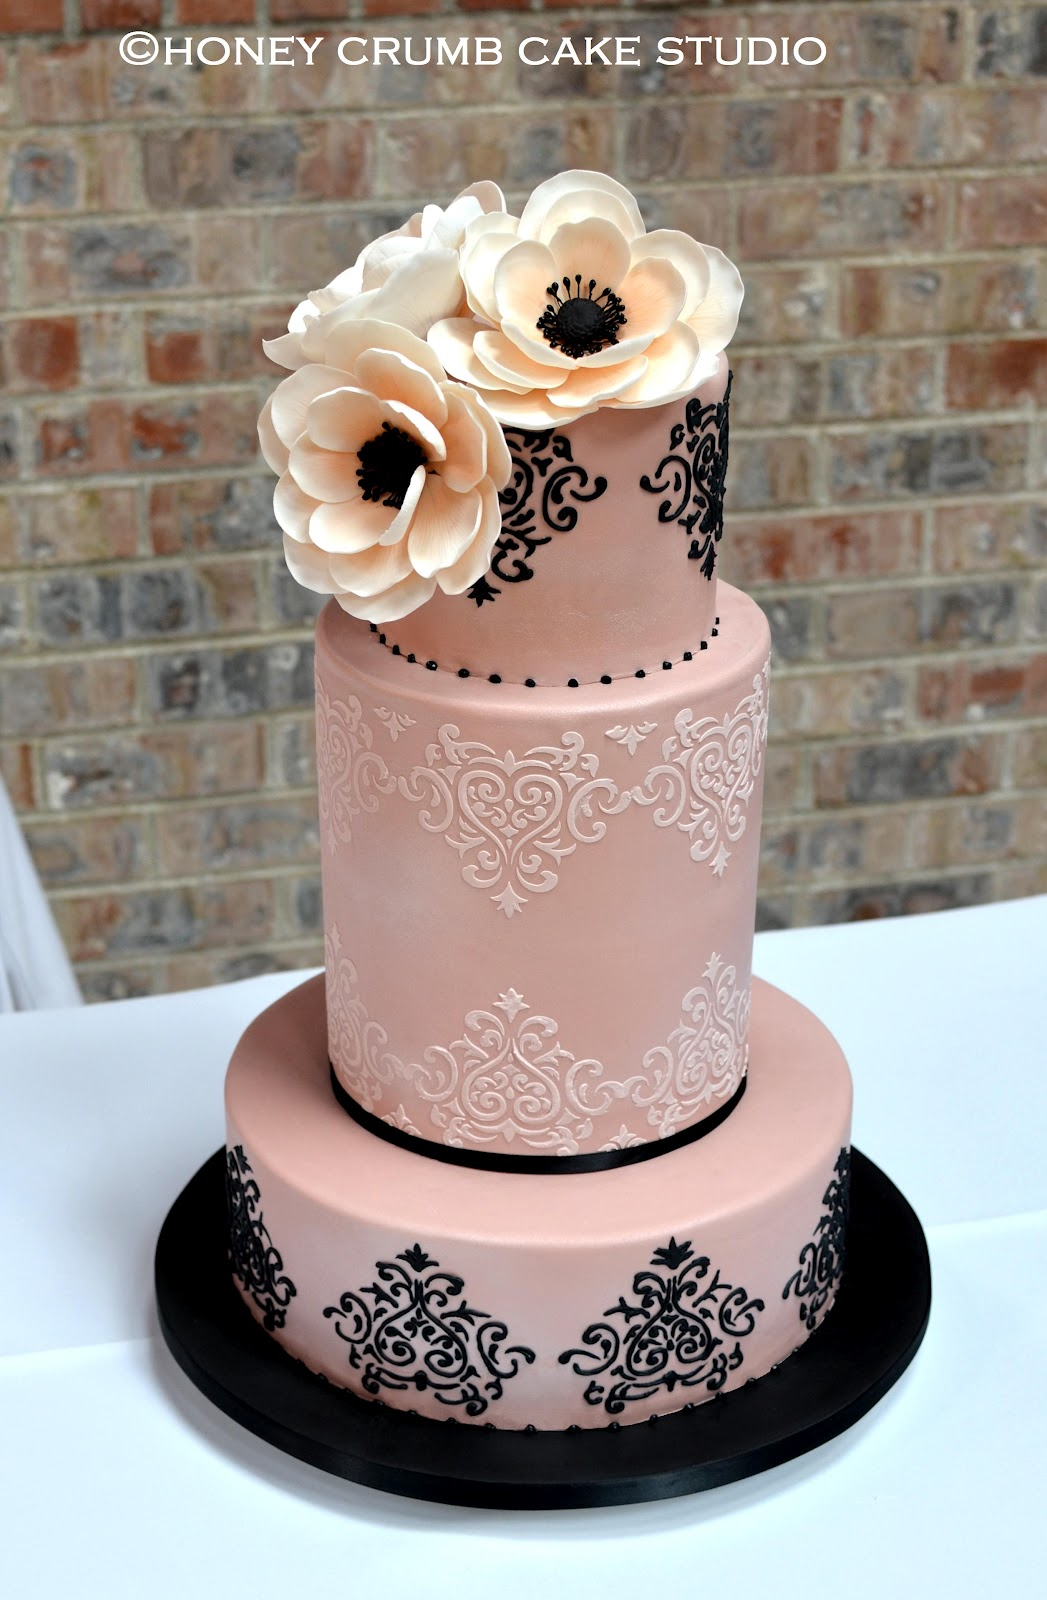 10 Blush And Black Cupcakes Photo - Black and White Gold Wedding ...